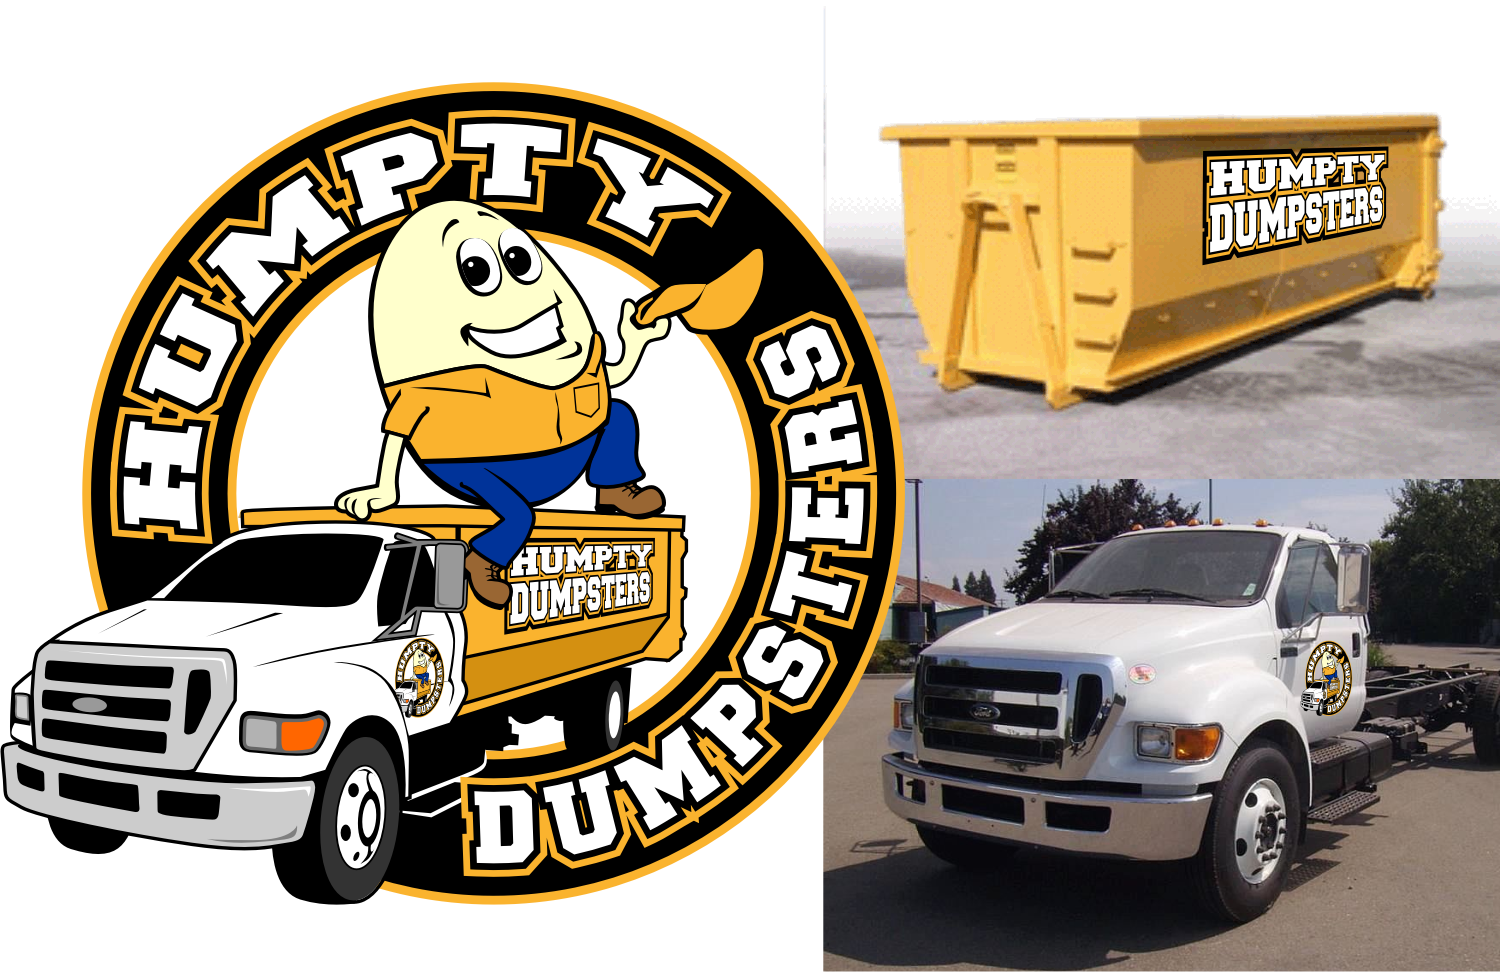 Create the next logo for Humpty Dumpsters